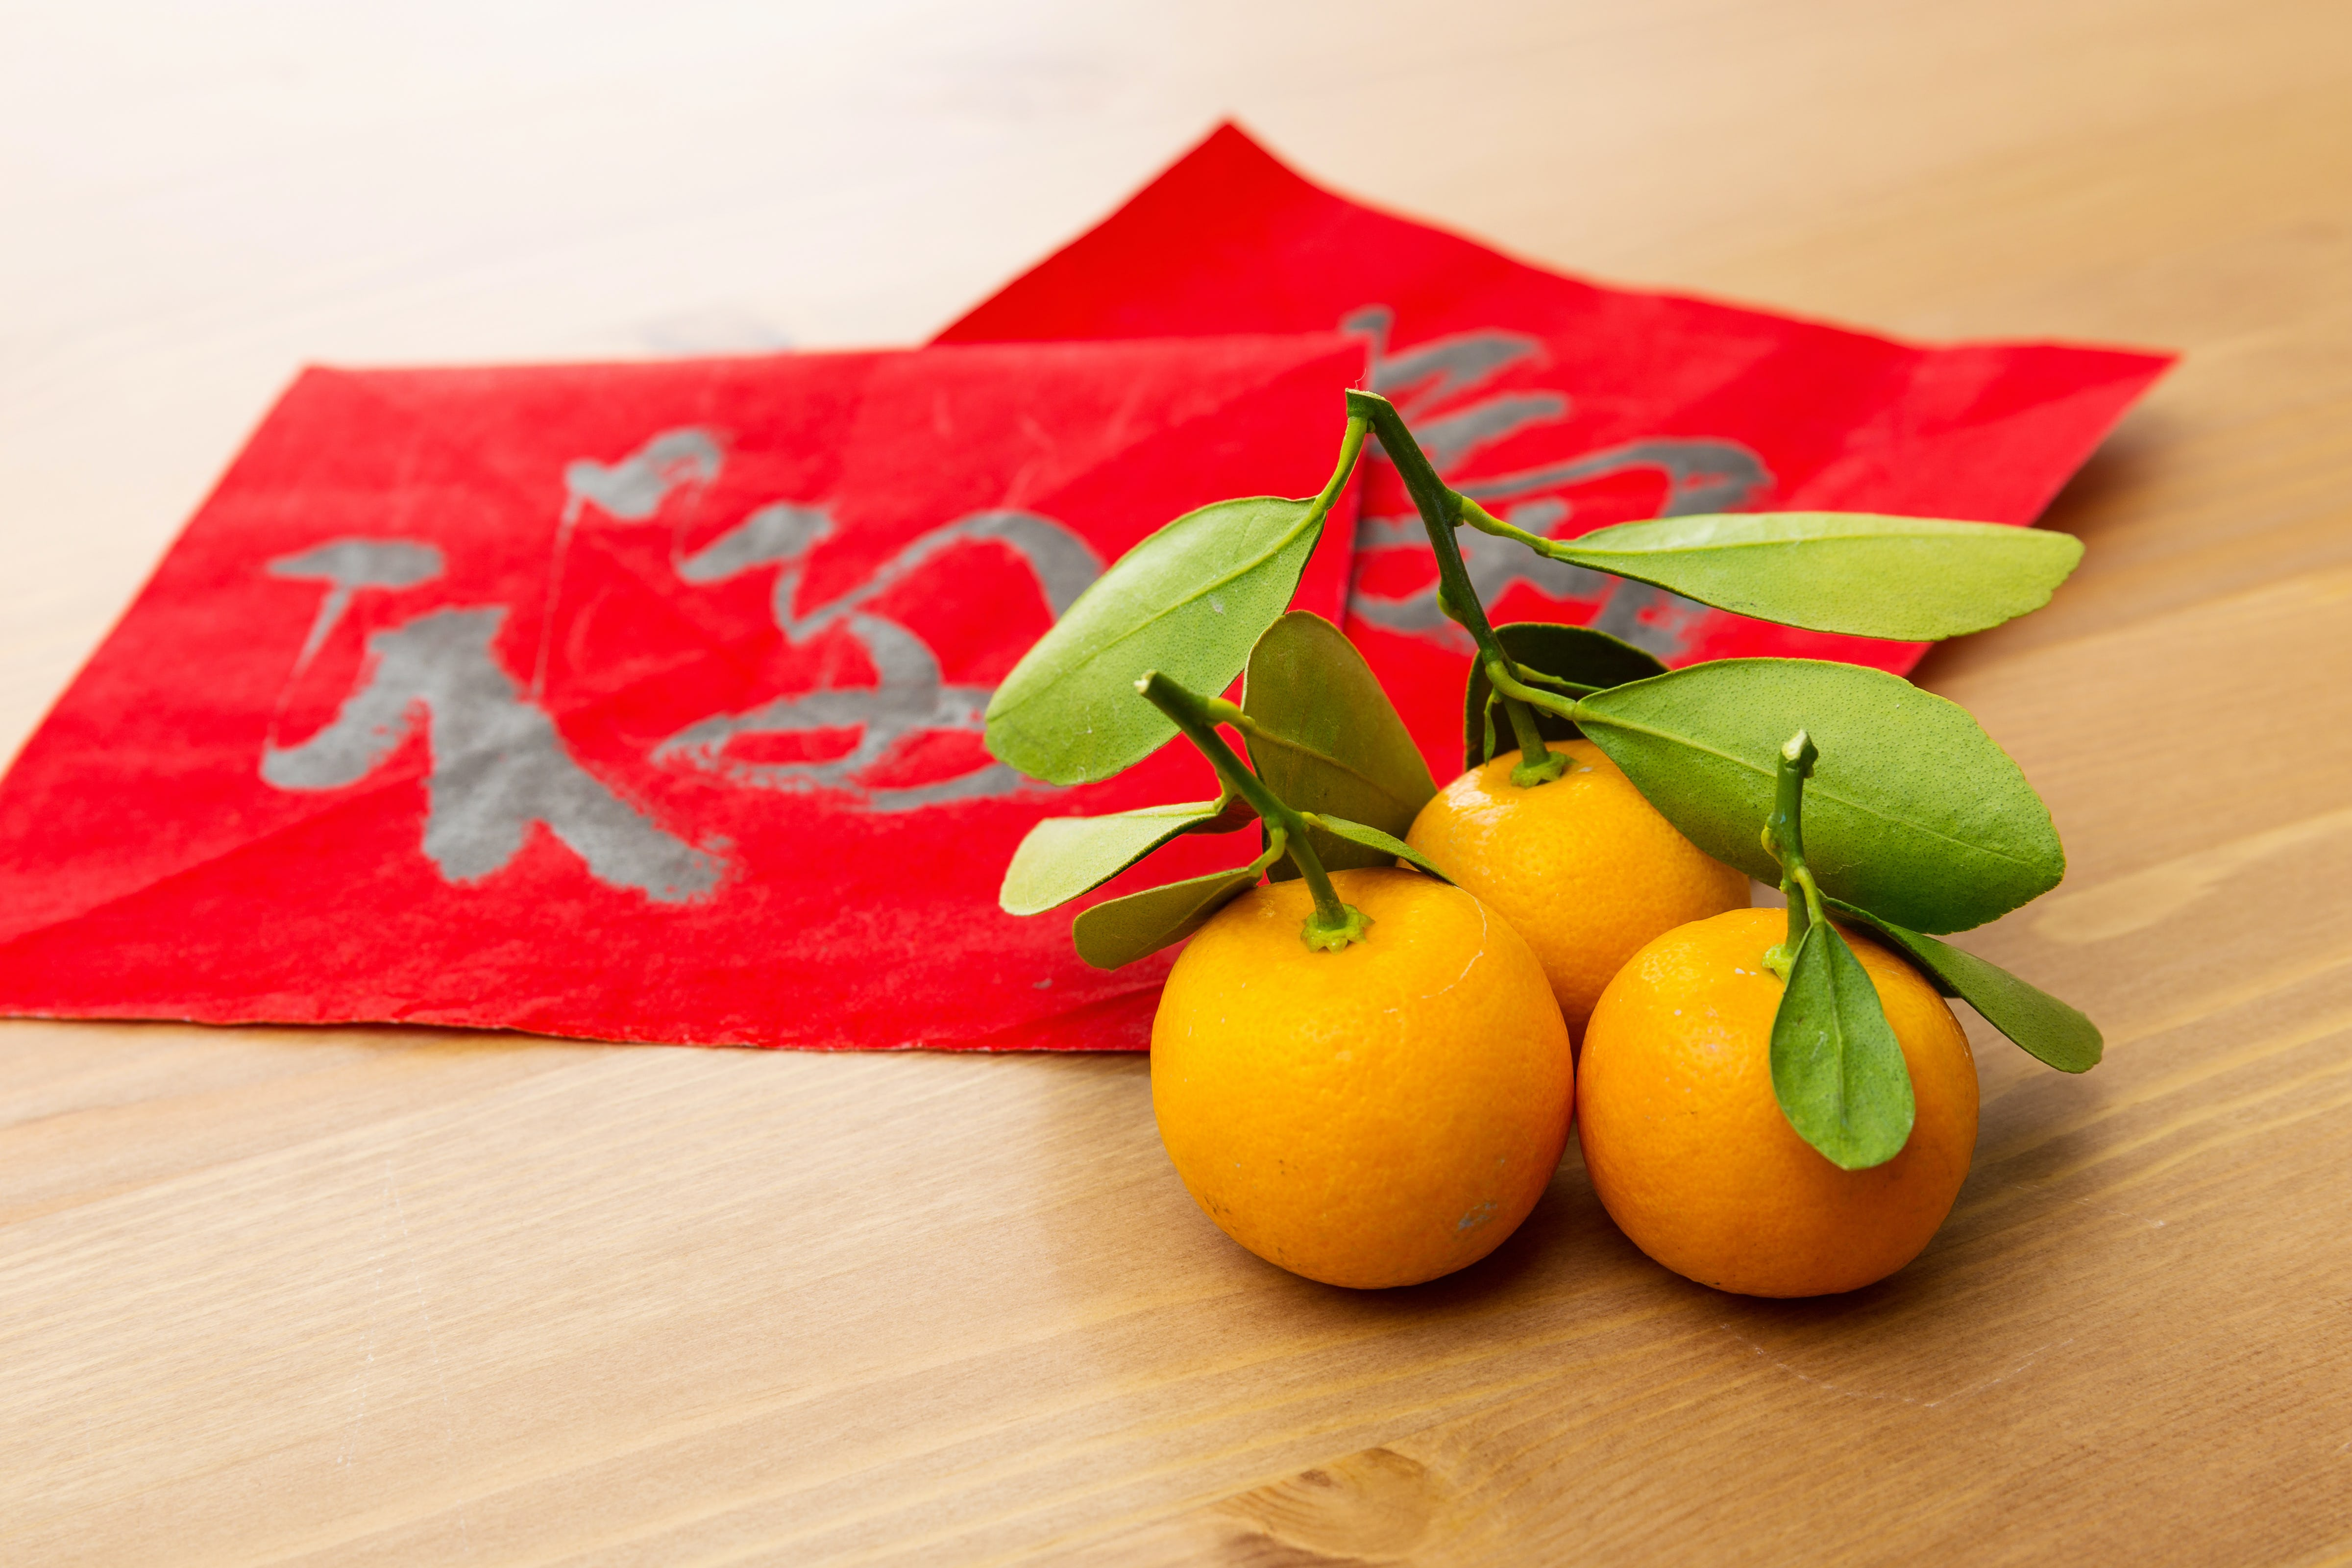 Chinese New Year kumquats and red pockets